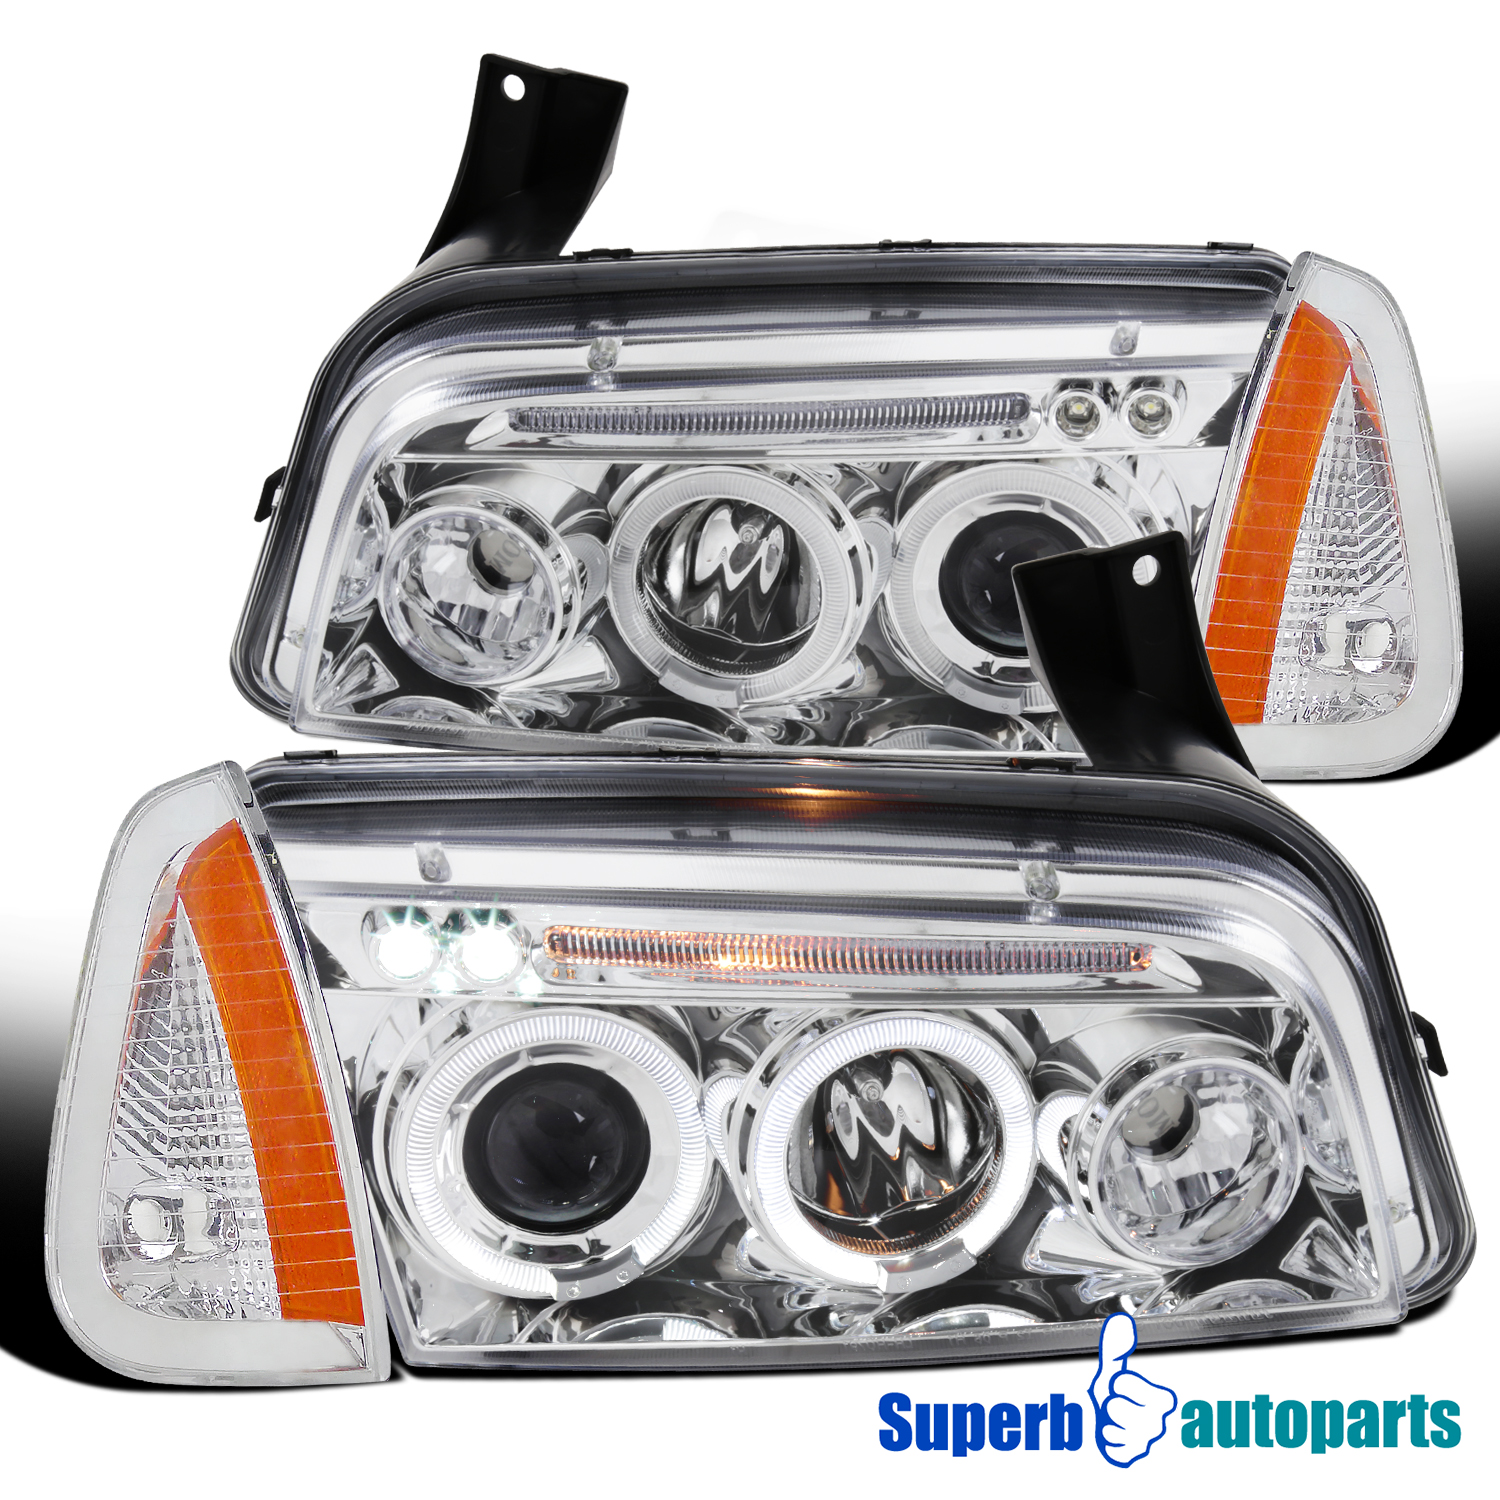 2006 2010 Dodge Charger Halo Led Projector Headlights